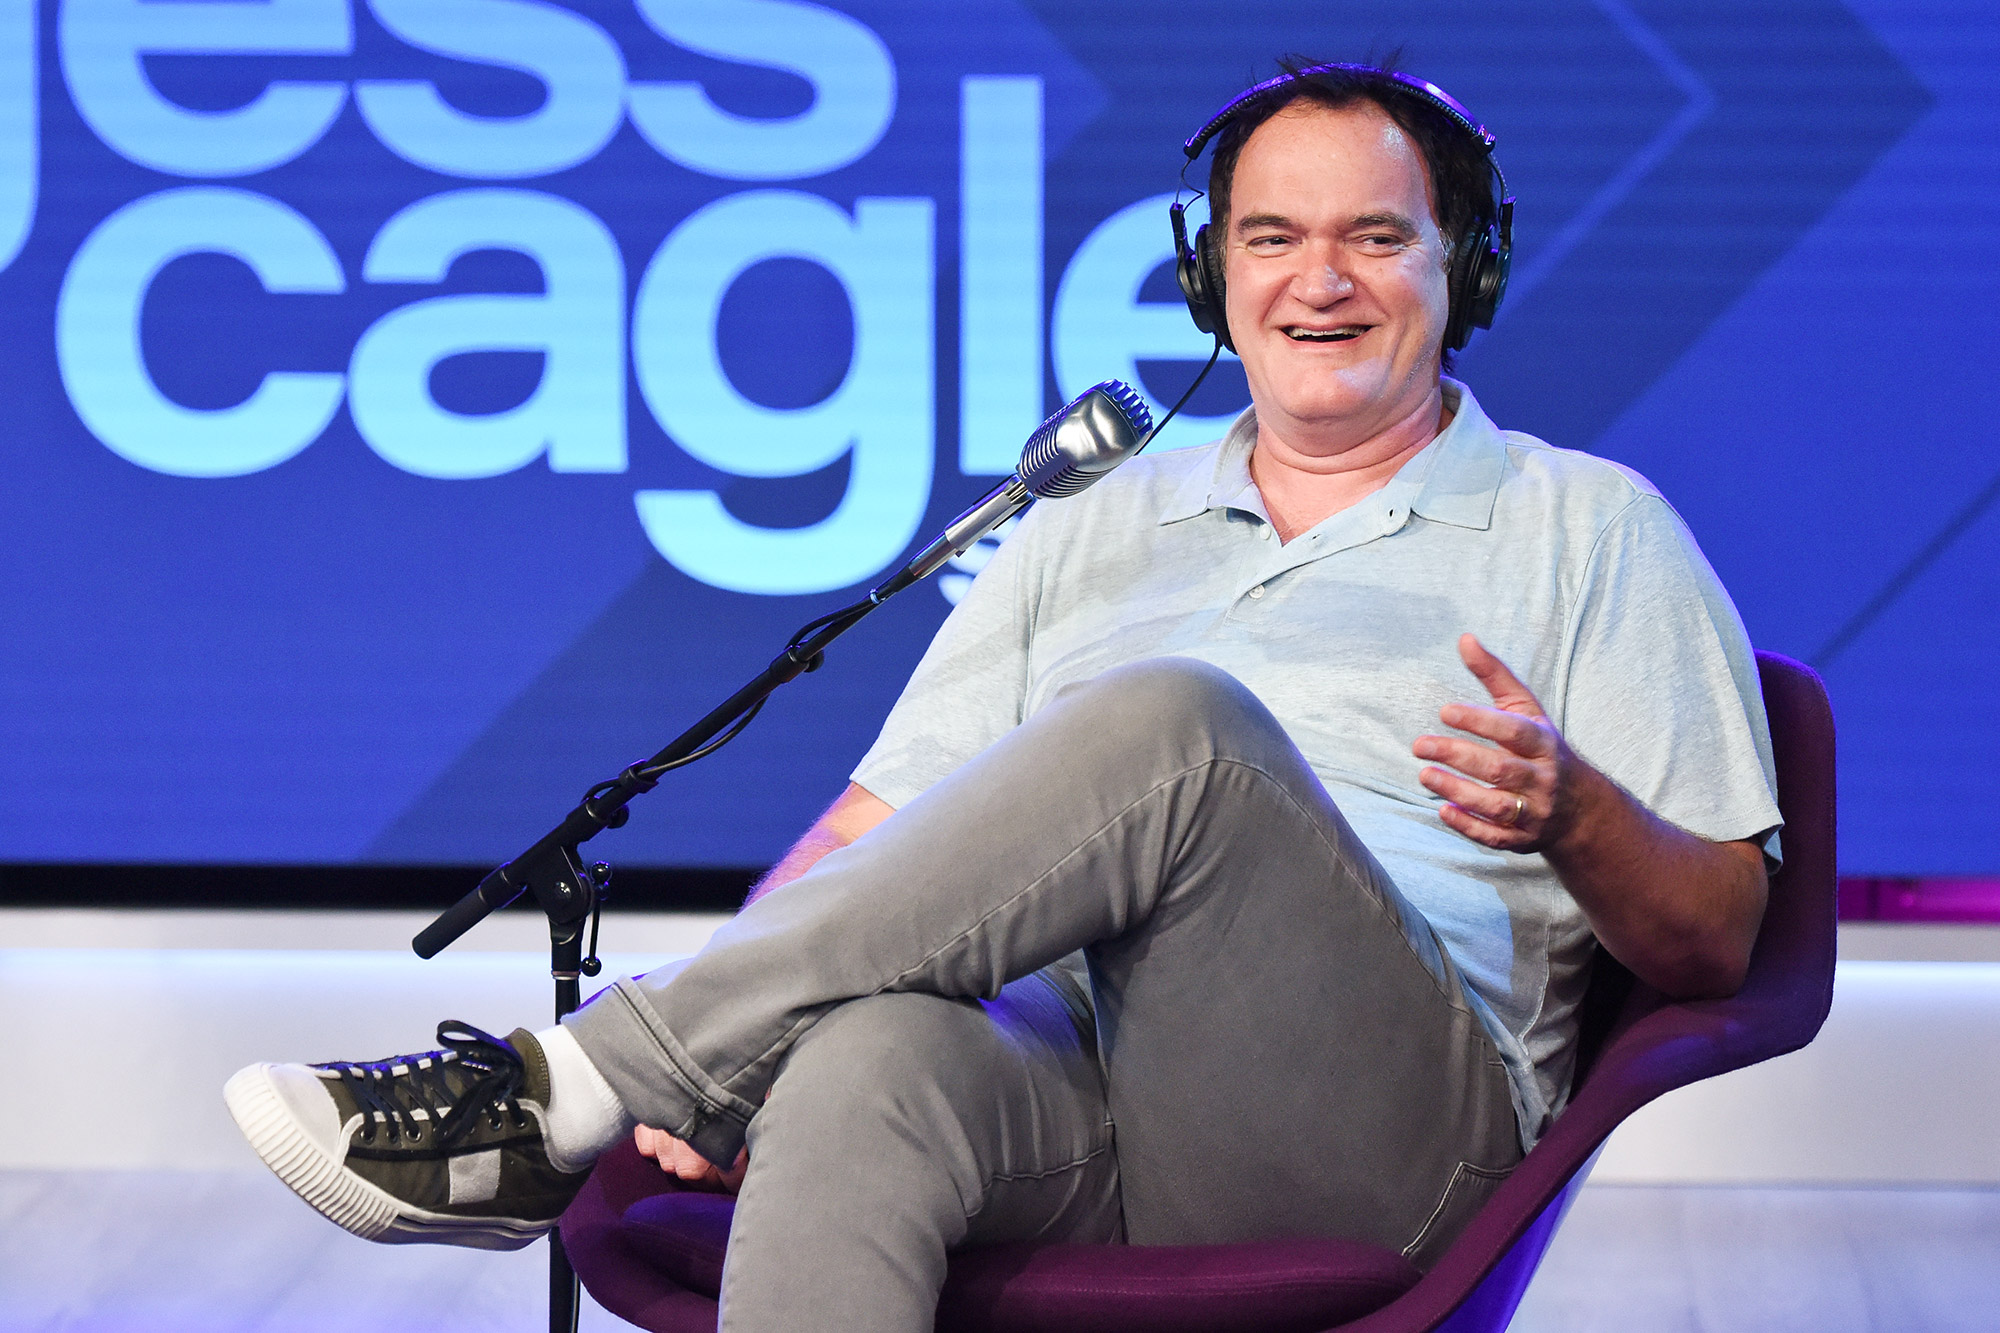 Quentin Tarantino visits The SiriusXM Hollywood Studios in Los Angeles on June 30, 2021 in Los Angeles, California